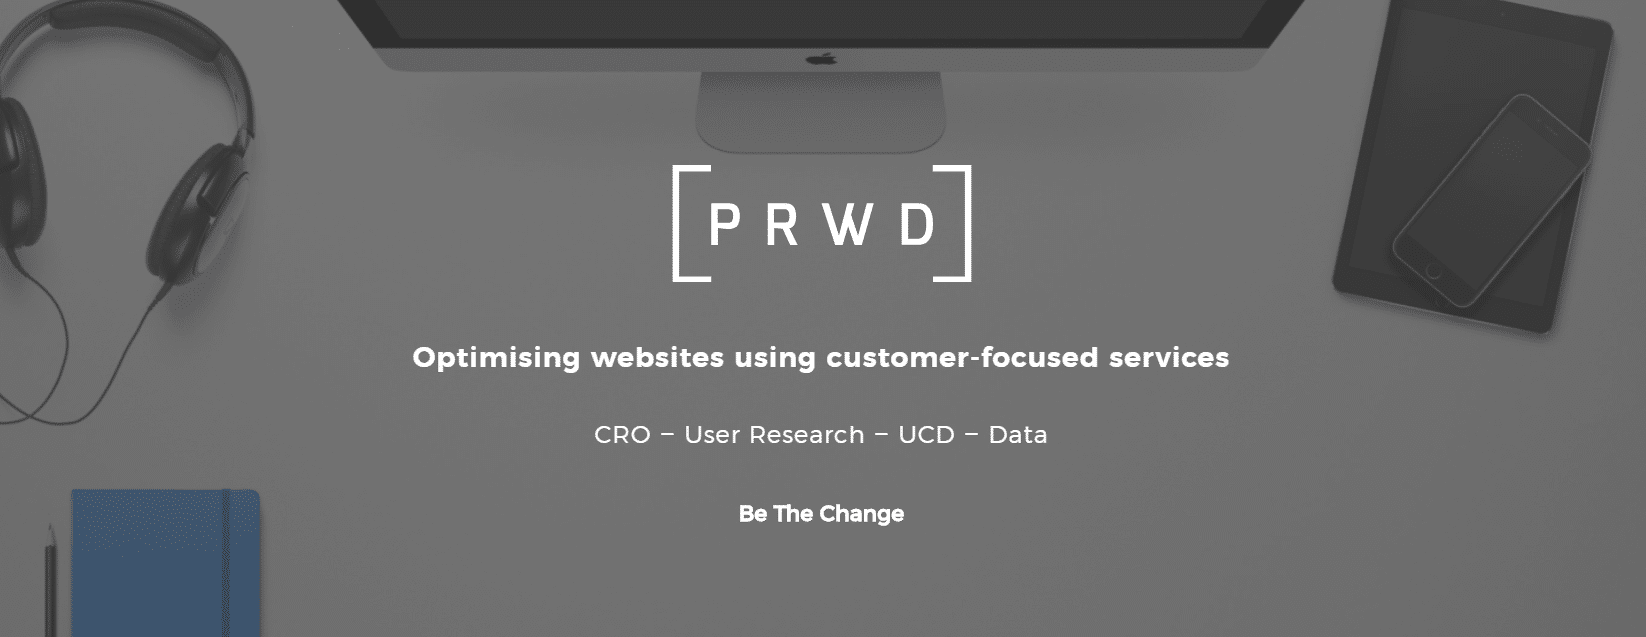 SessionCam Partners With UX & CRO Specialist PRWD